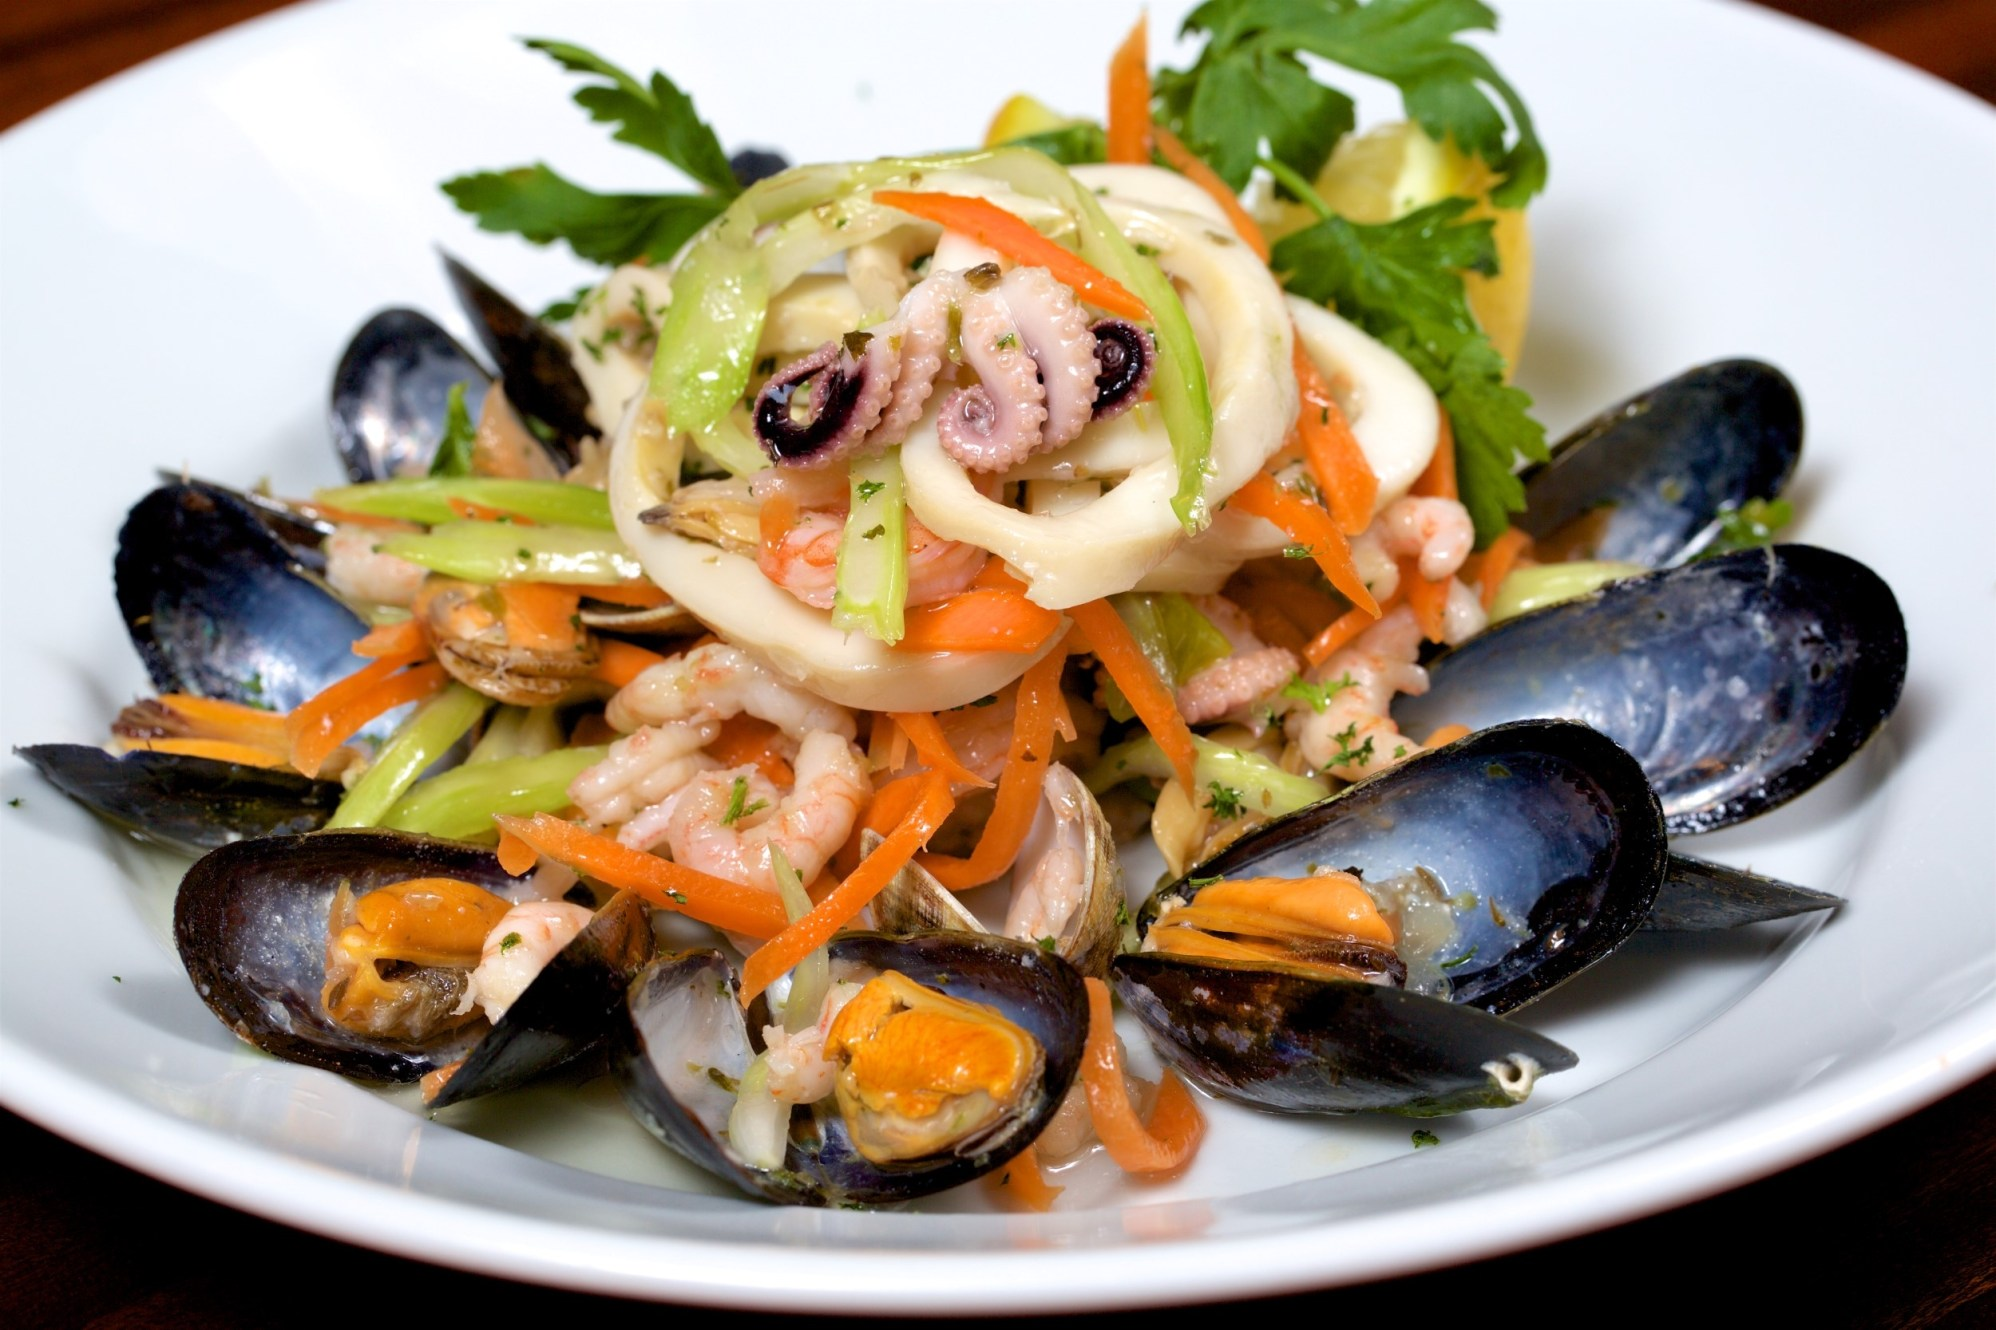 122 ITALIAN FINEST CUISINE (4) FISH SALMON MUSSELS AND LOBSTERS 008754 (Custom)